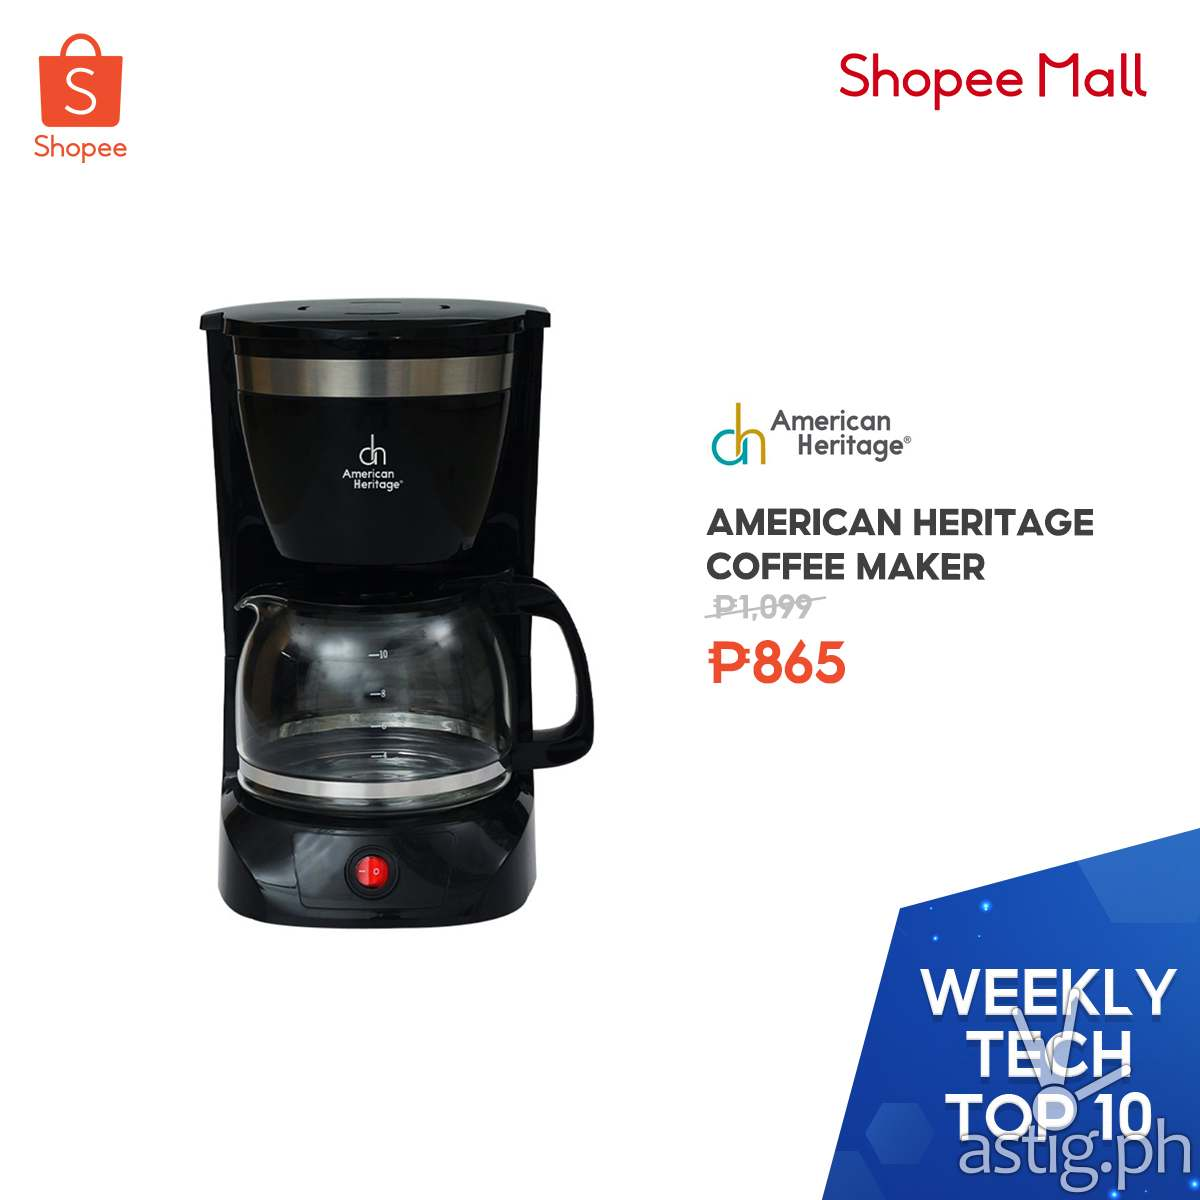 American Heritage Coffee Maker